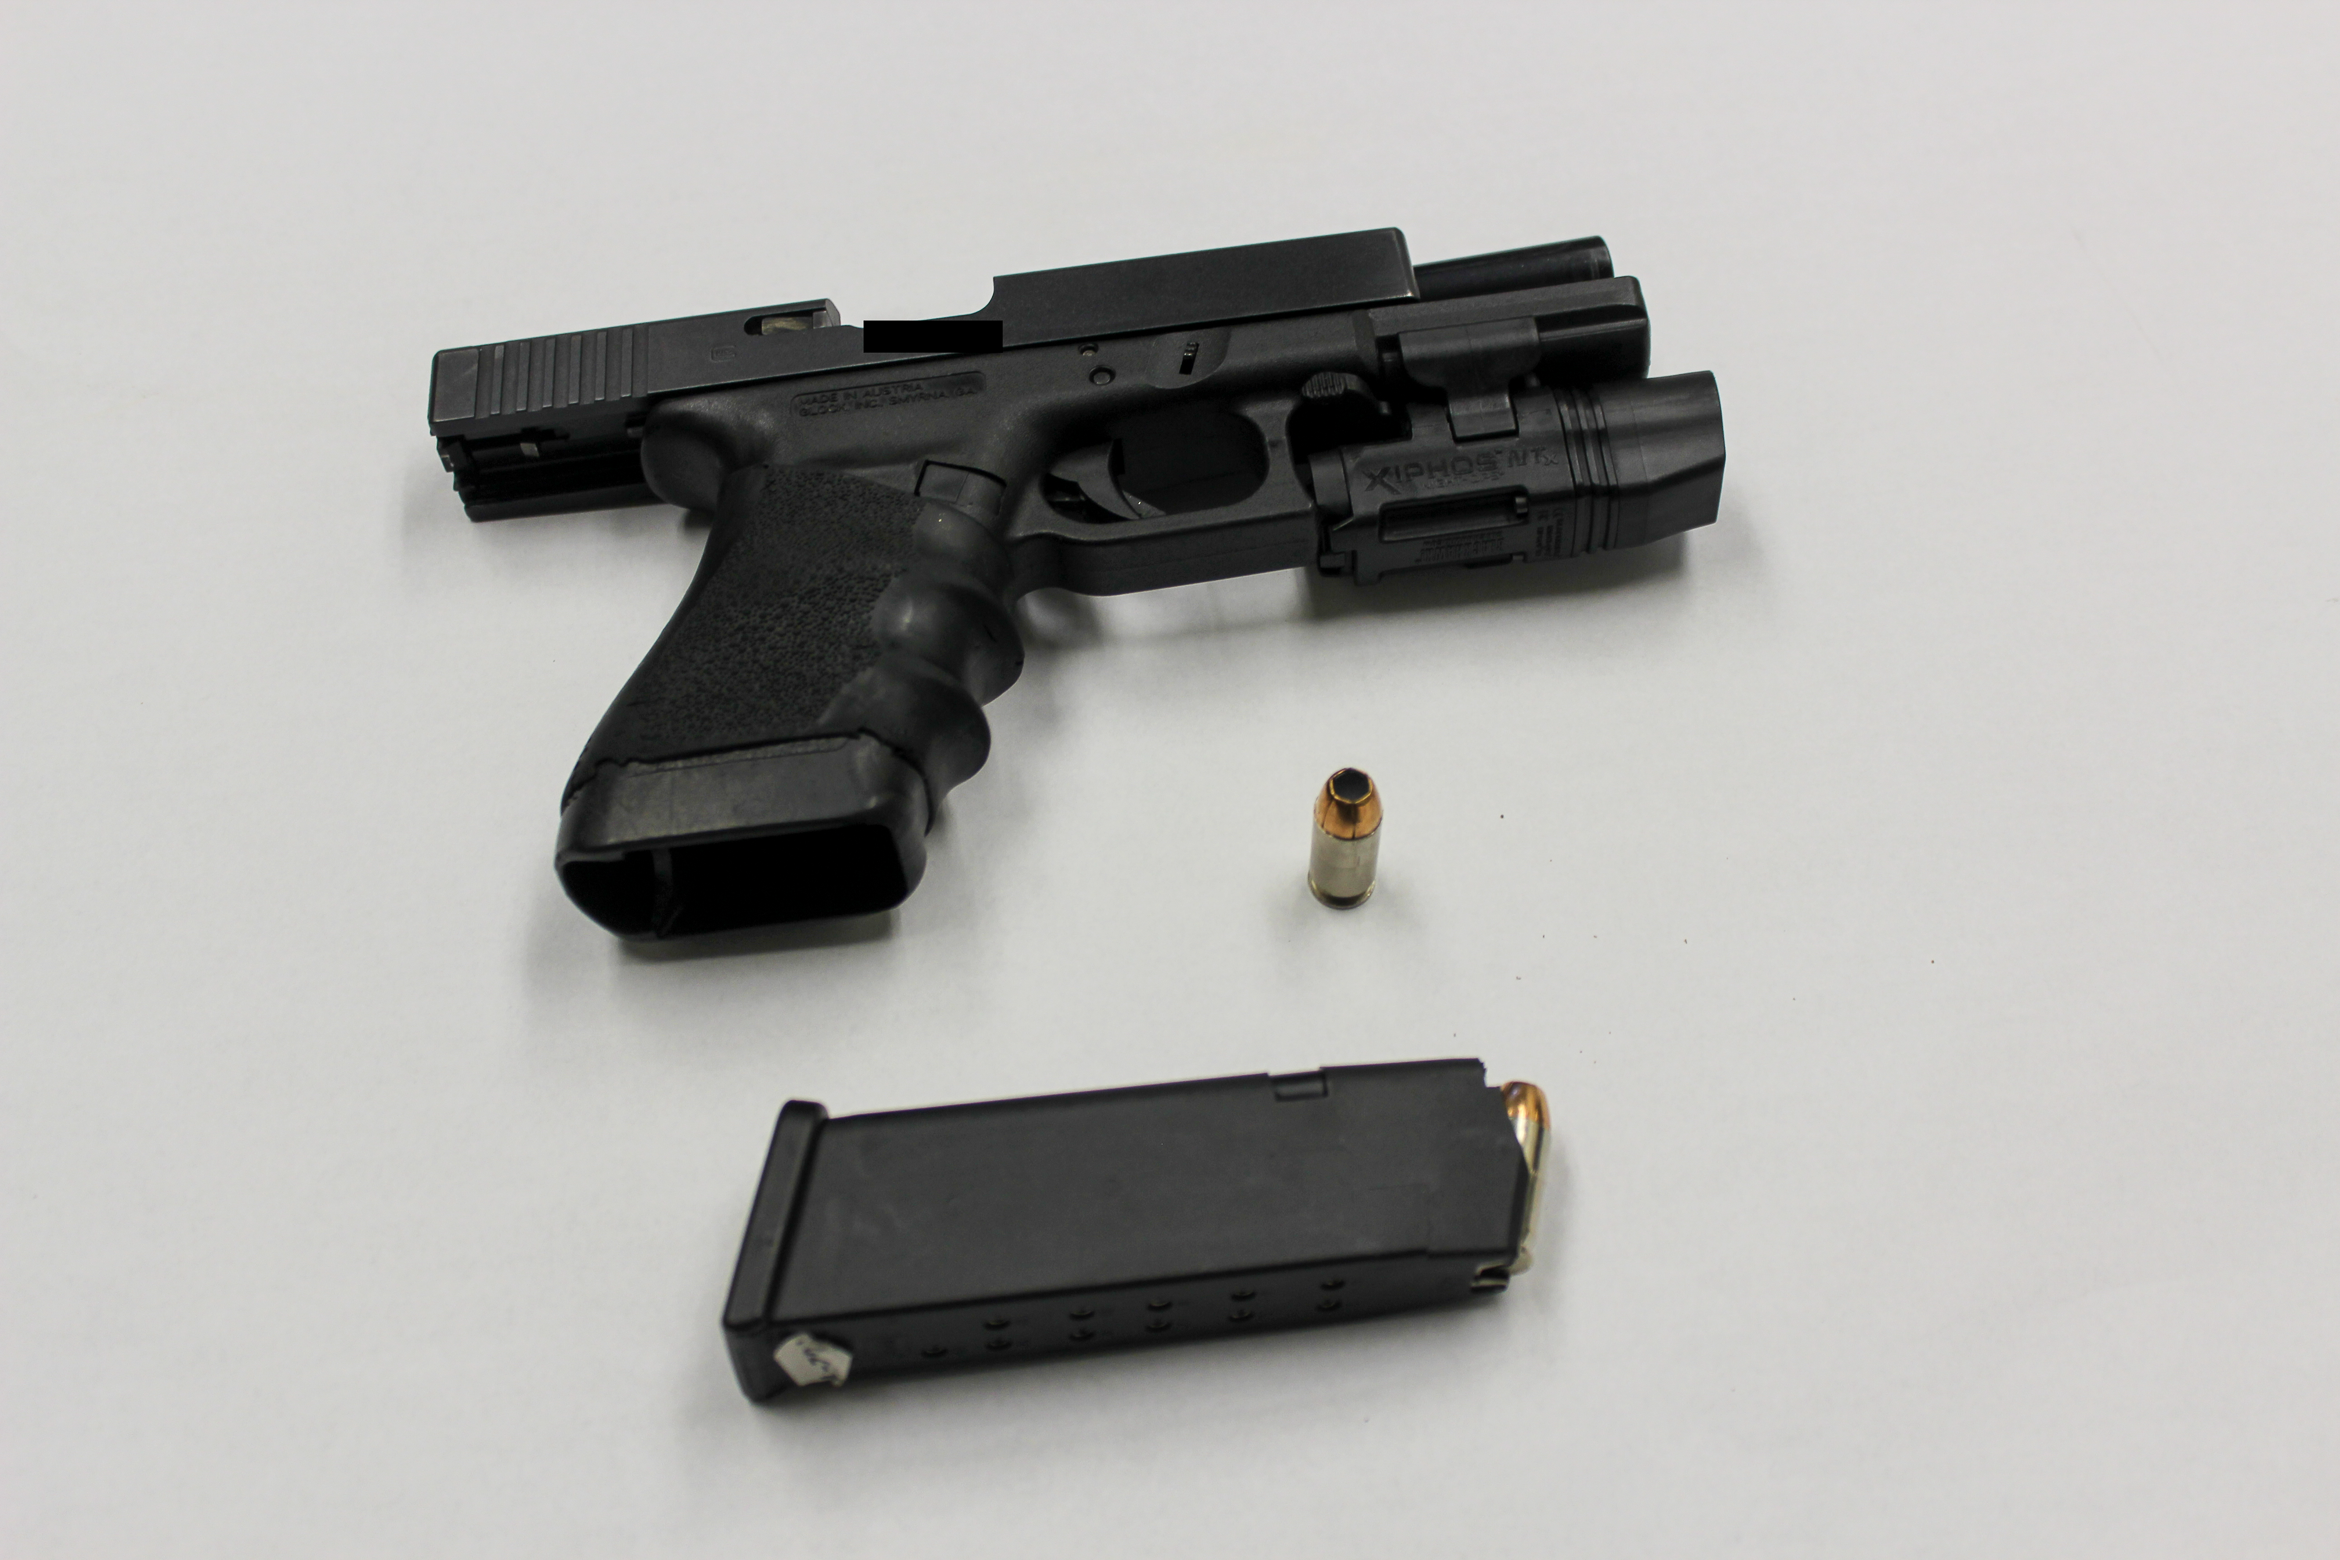 Ofc. McMahon's .45-caliber Glock 21 pistol is seen in an evidence photo after he used it to kill Ronell Foster, a 33-year-old father of two, on Feb. 13, 2018.